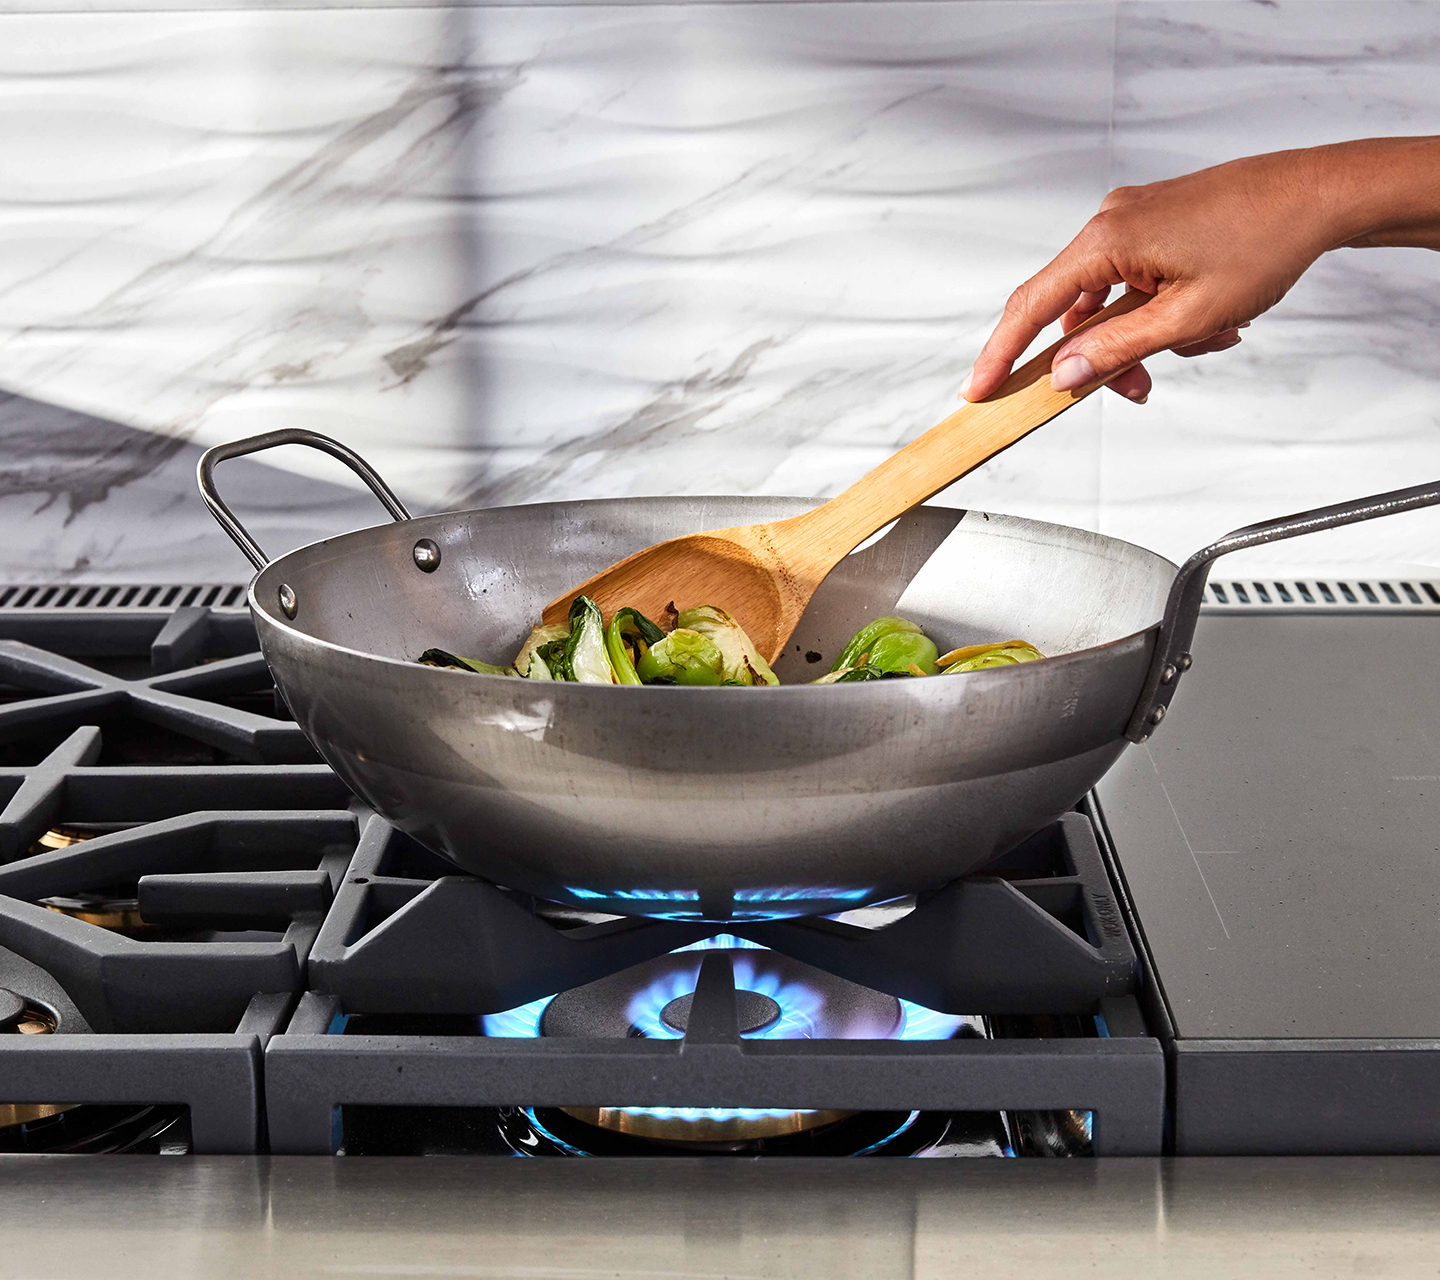 36 Quot Dual Fuel Pro Range With Steam Assist Oven And Griddle